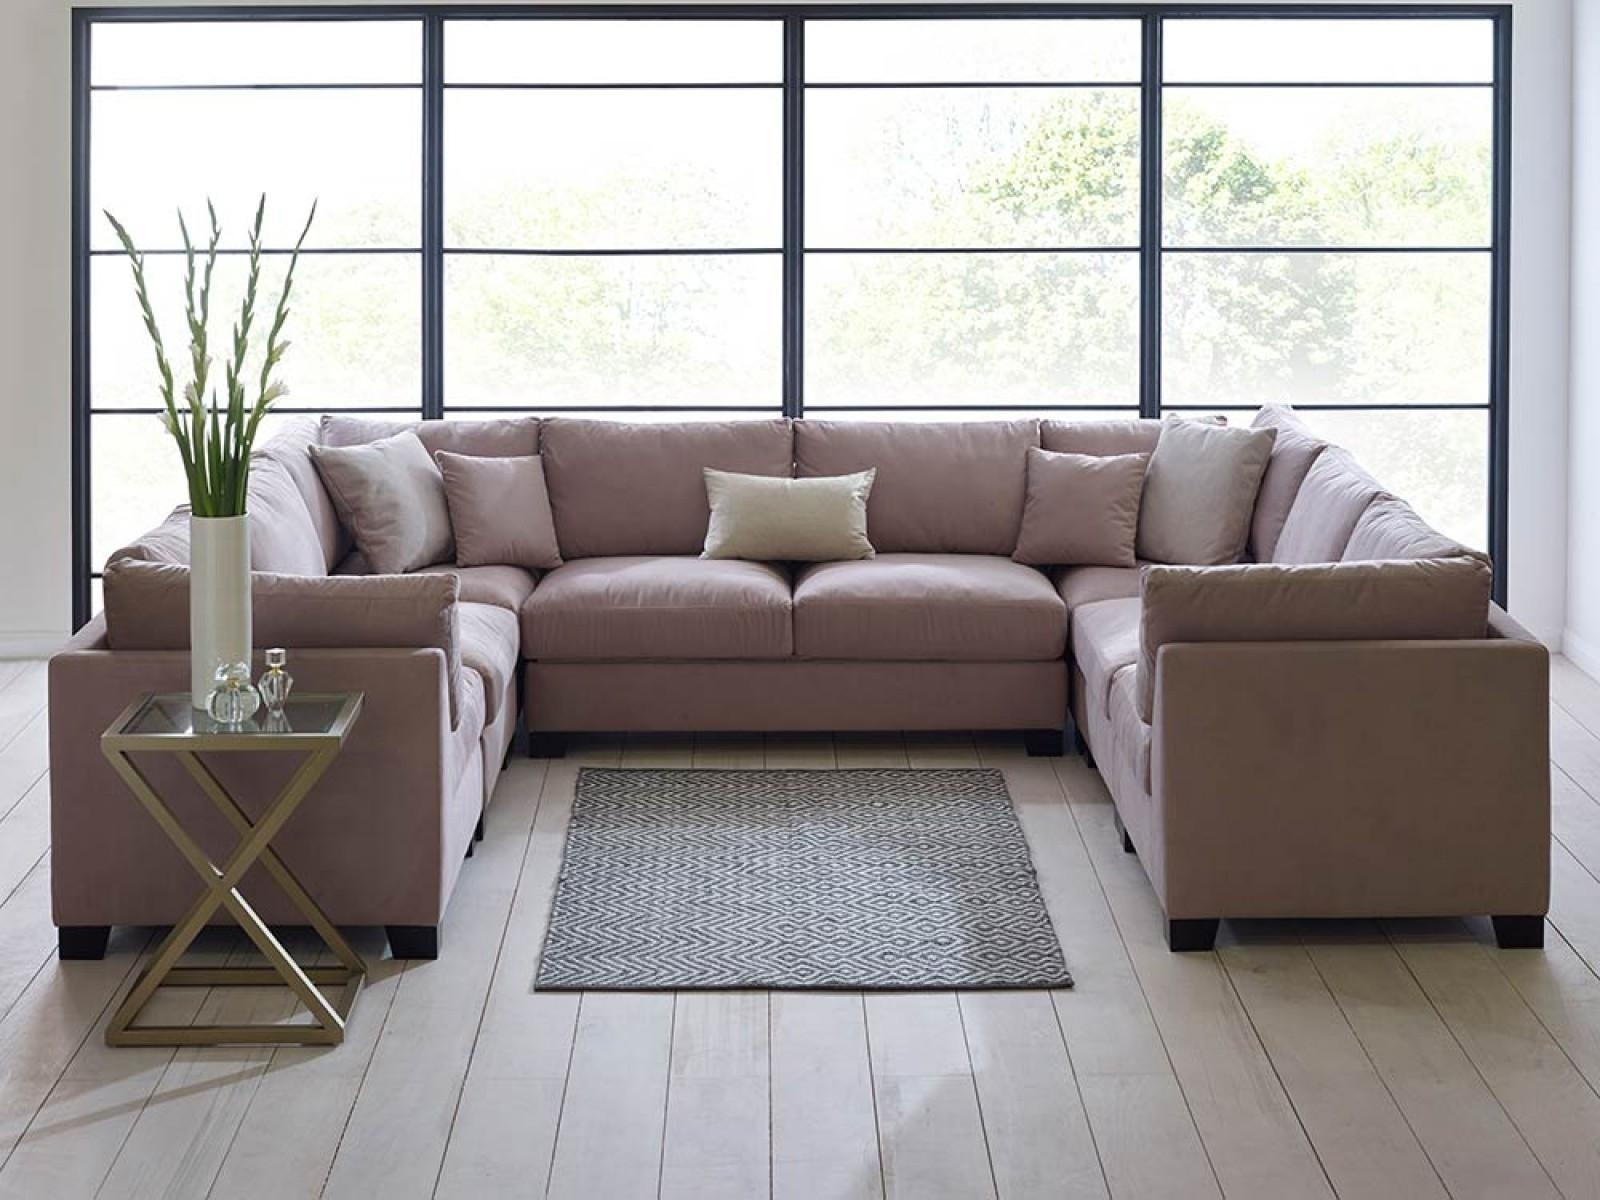 Furniture : Leather Sectional Couch Lovely U Shaped Sofa Google Throughout Blue U Shaped Sectionals (Image 5 of 10)